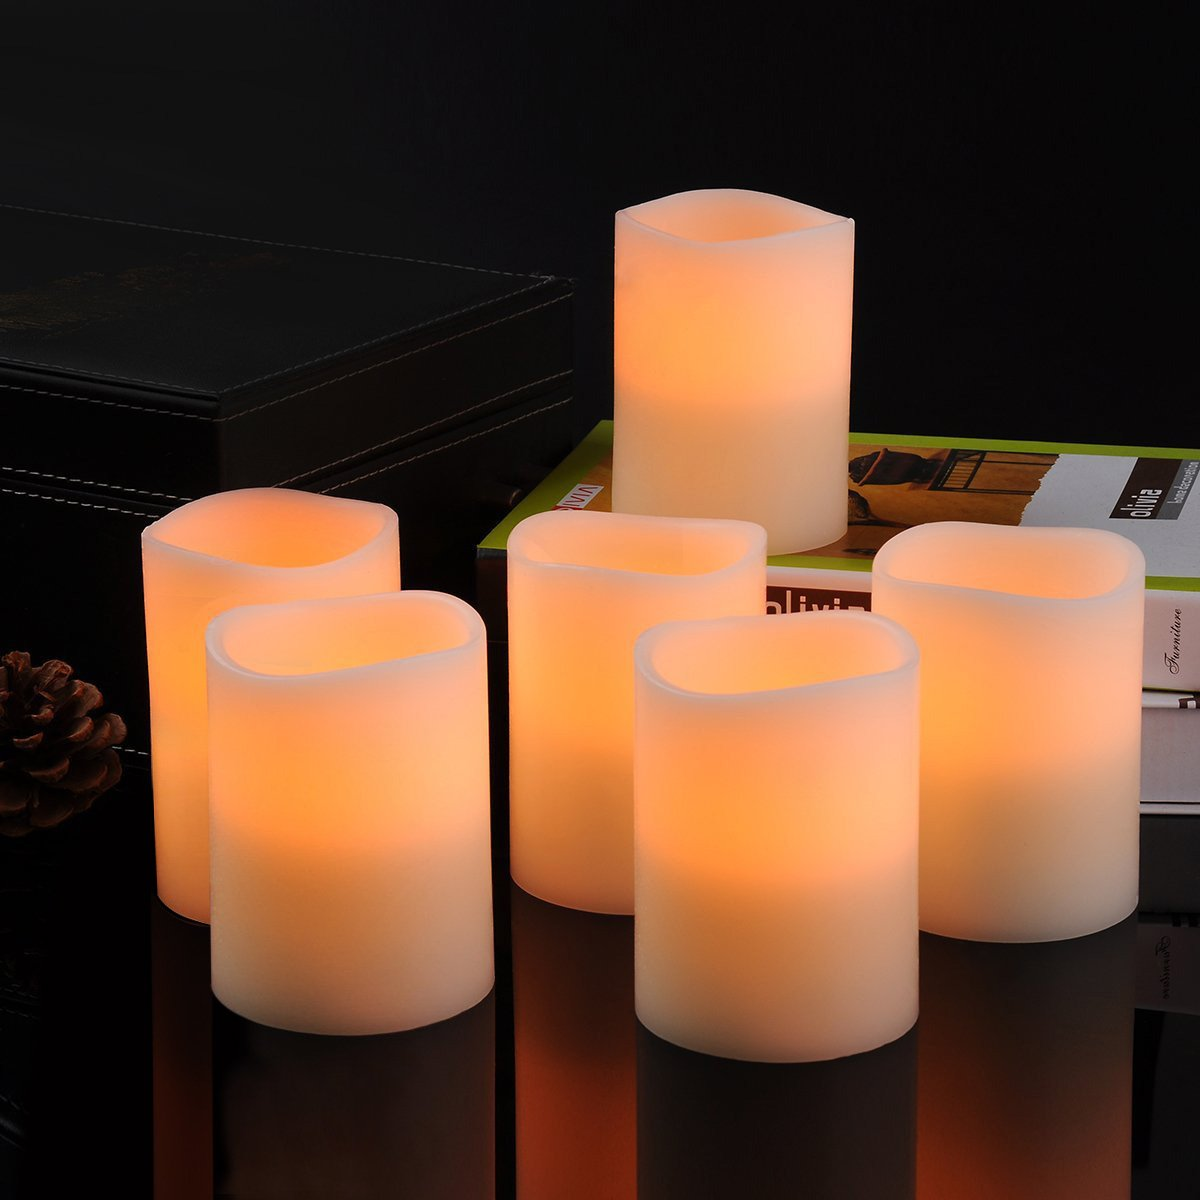 Kohree Flameless Candles Light LED Candles with Built-in Daily-Cycle Timer, Outdoor Battery Operated Led Real Wax Candles Light, Pillar Candle, Warm White Pack of 12 by Kohree (Image #7)